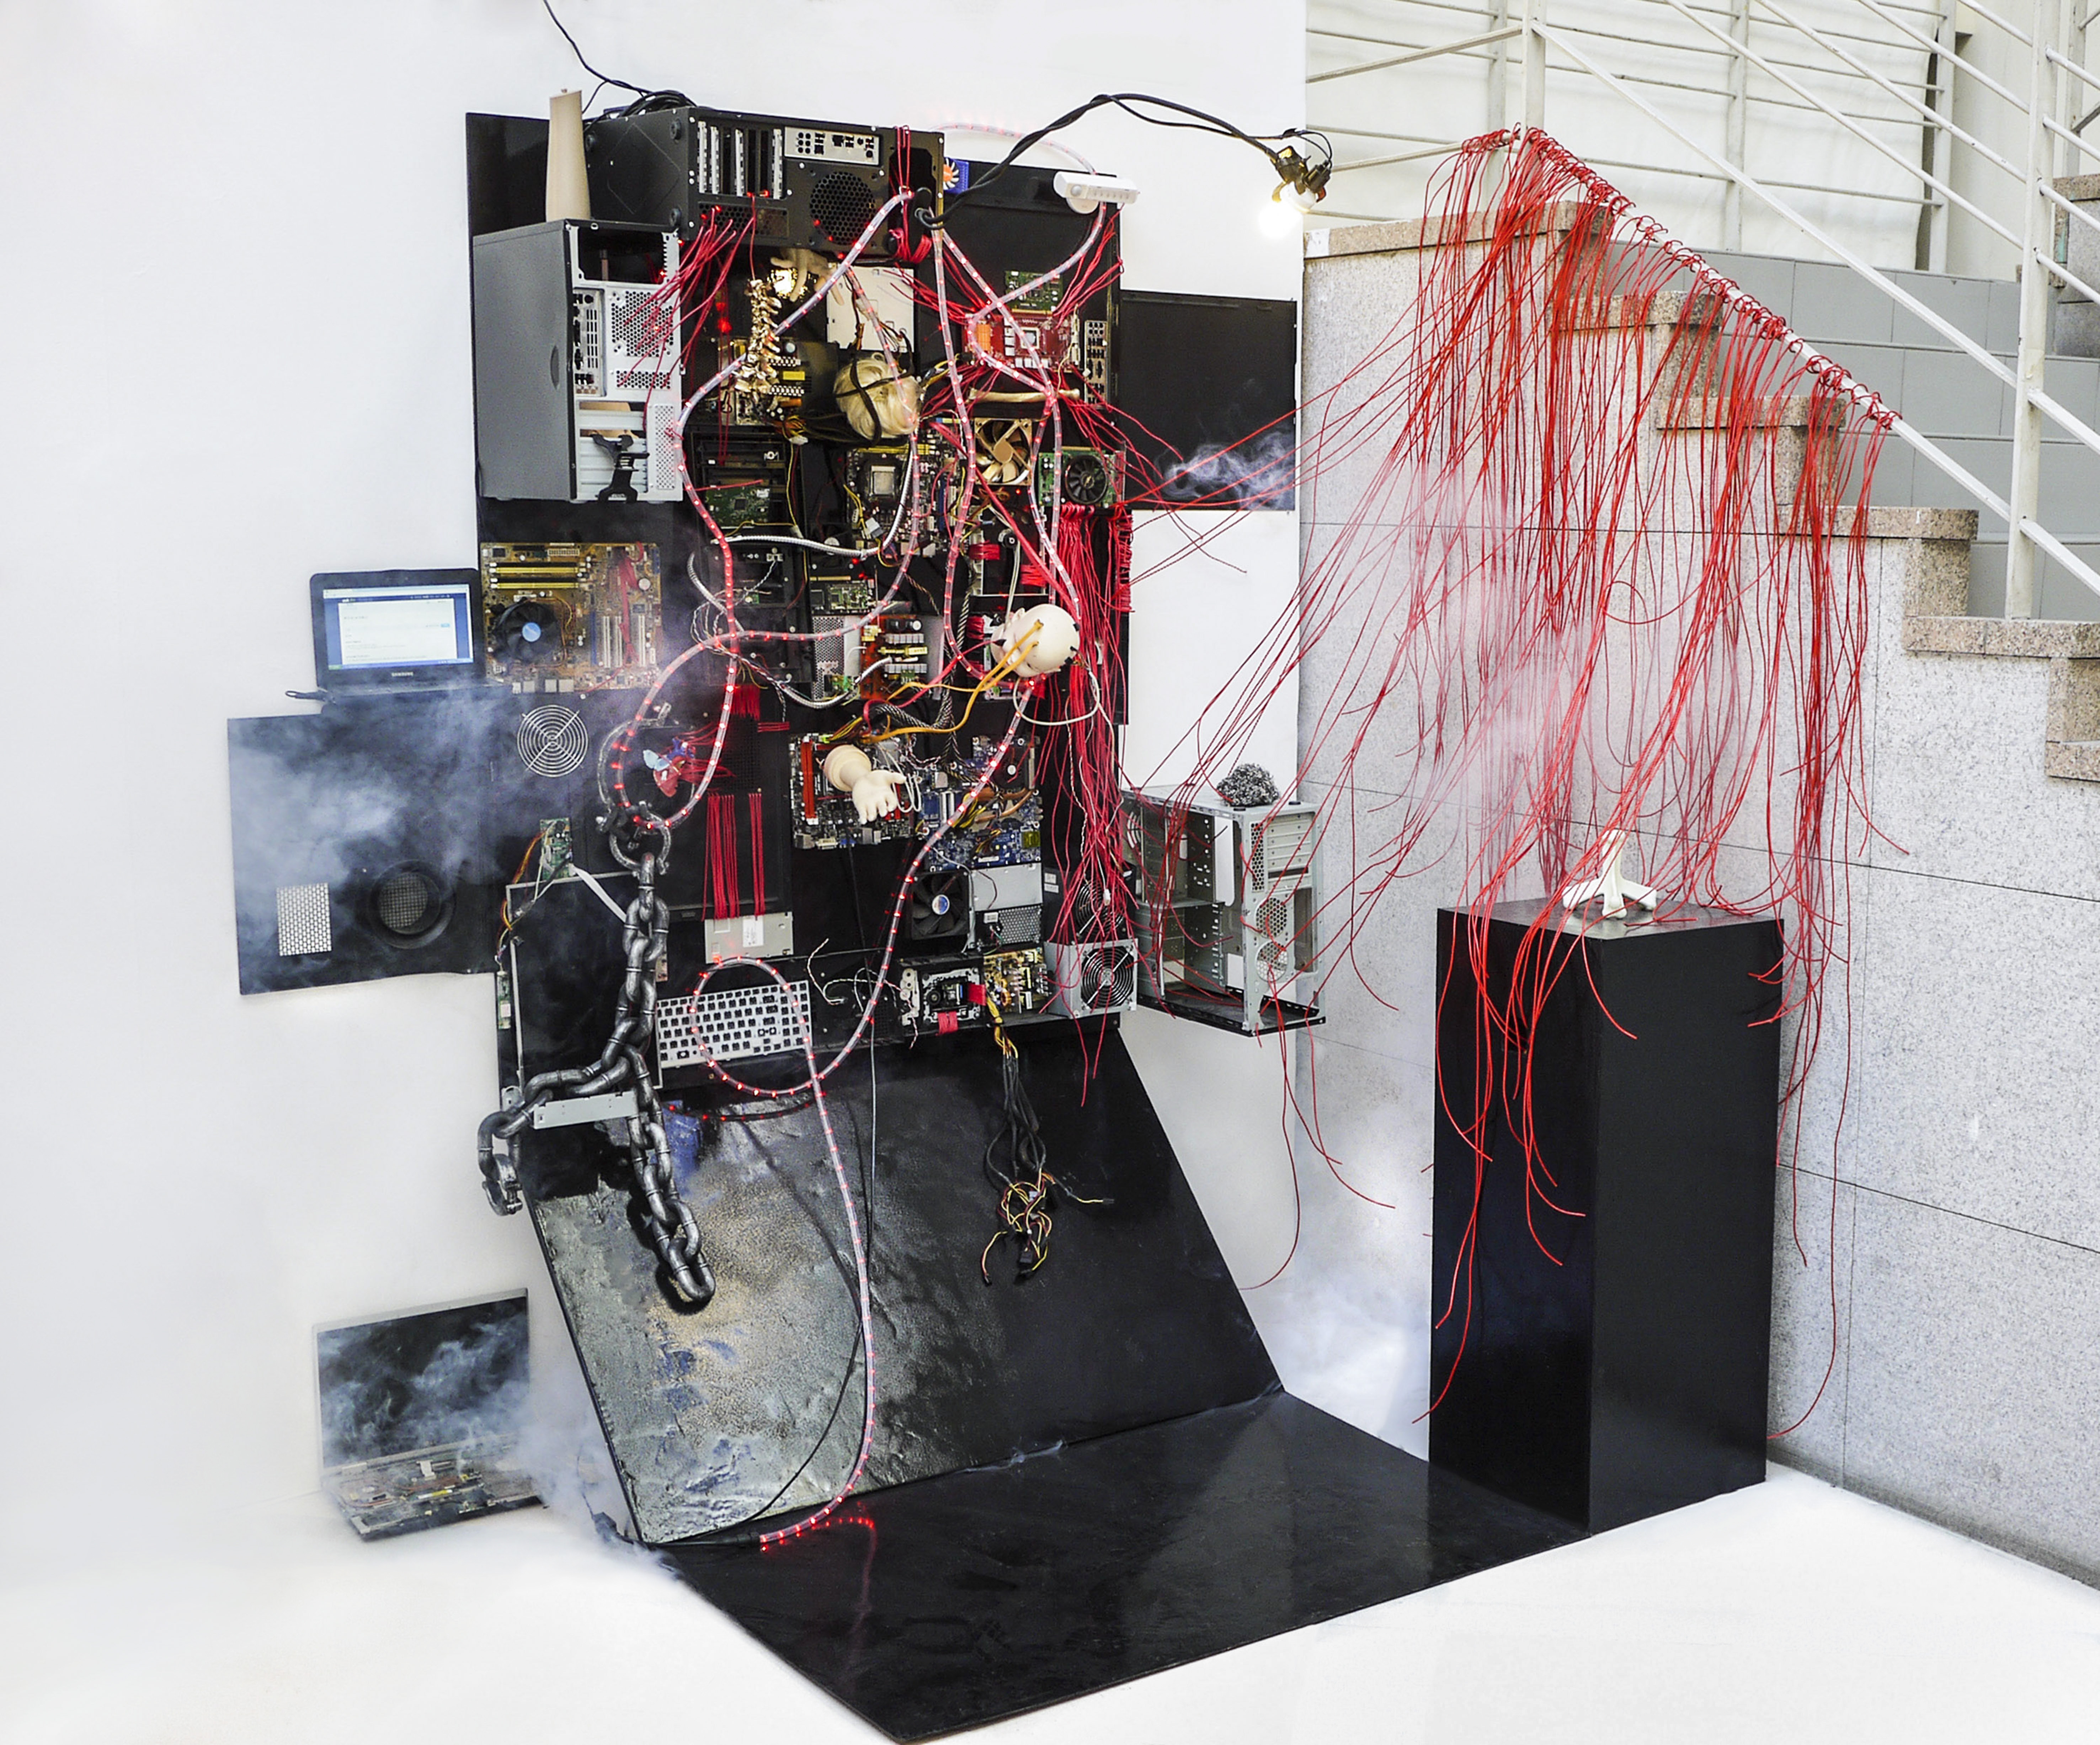 11 Homosacer2-1, dc-motor, fog machine, dummy, anatomy model, computer part, stainless steel, wire, silicone, mixed media,100x180x220(cm) 2015